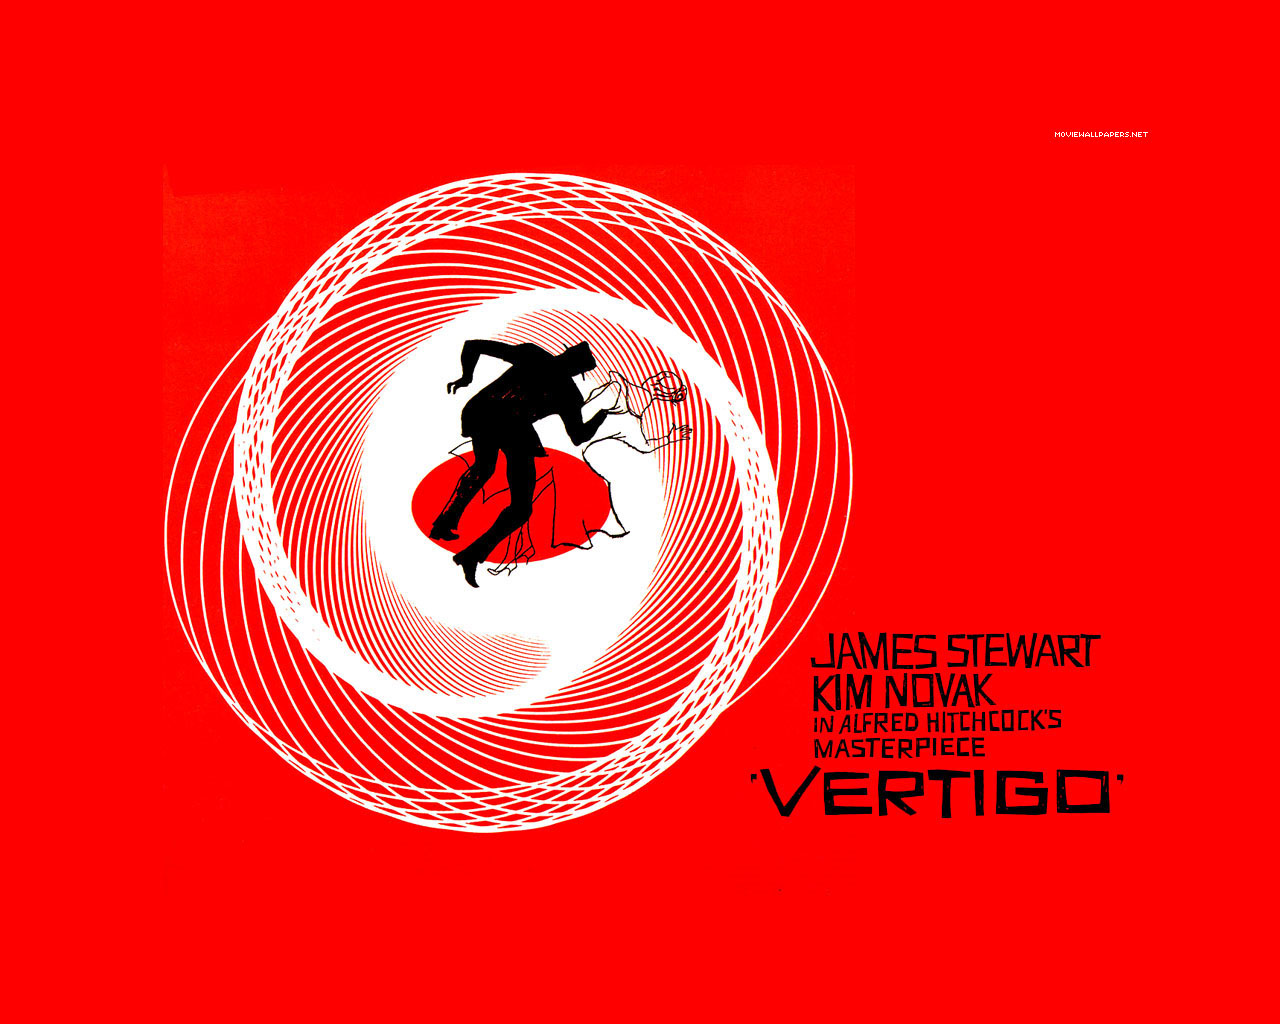 Vertigo Wallpaper and Background Image 1280x1024 ID57066 1280x1024